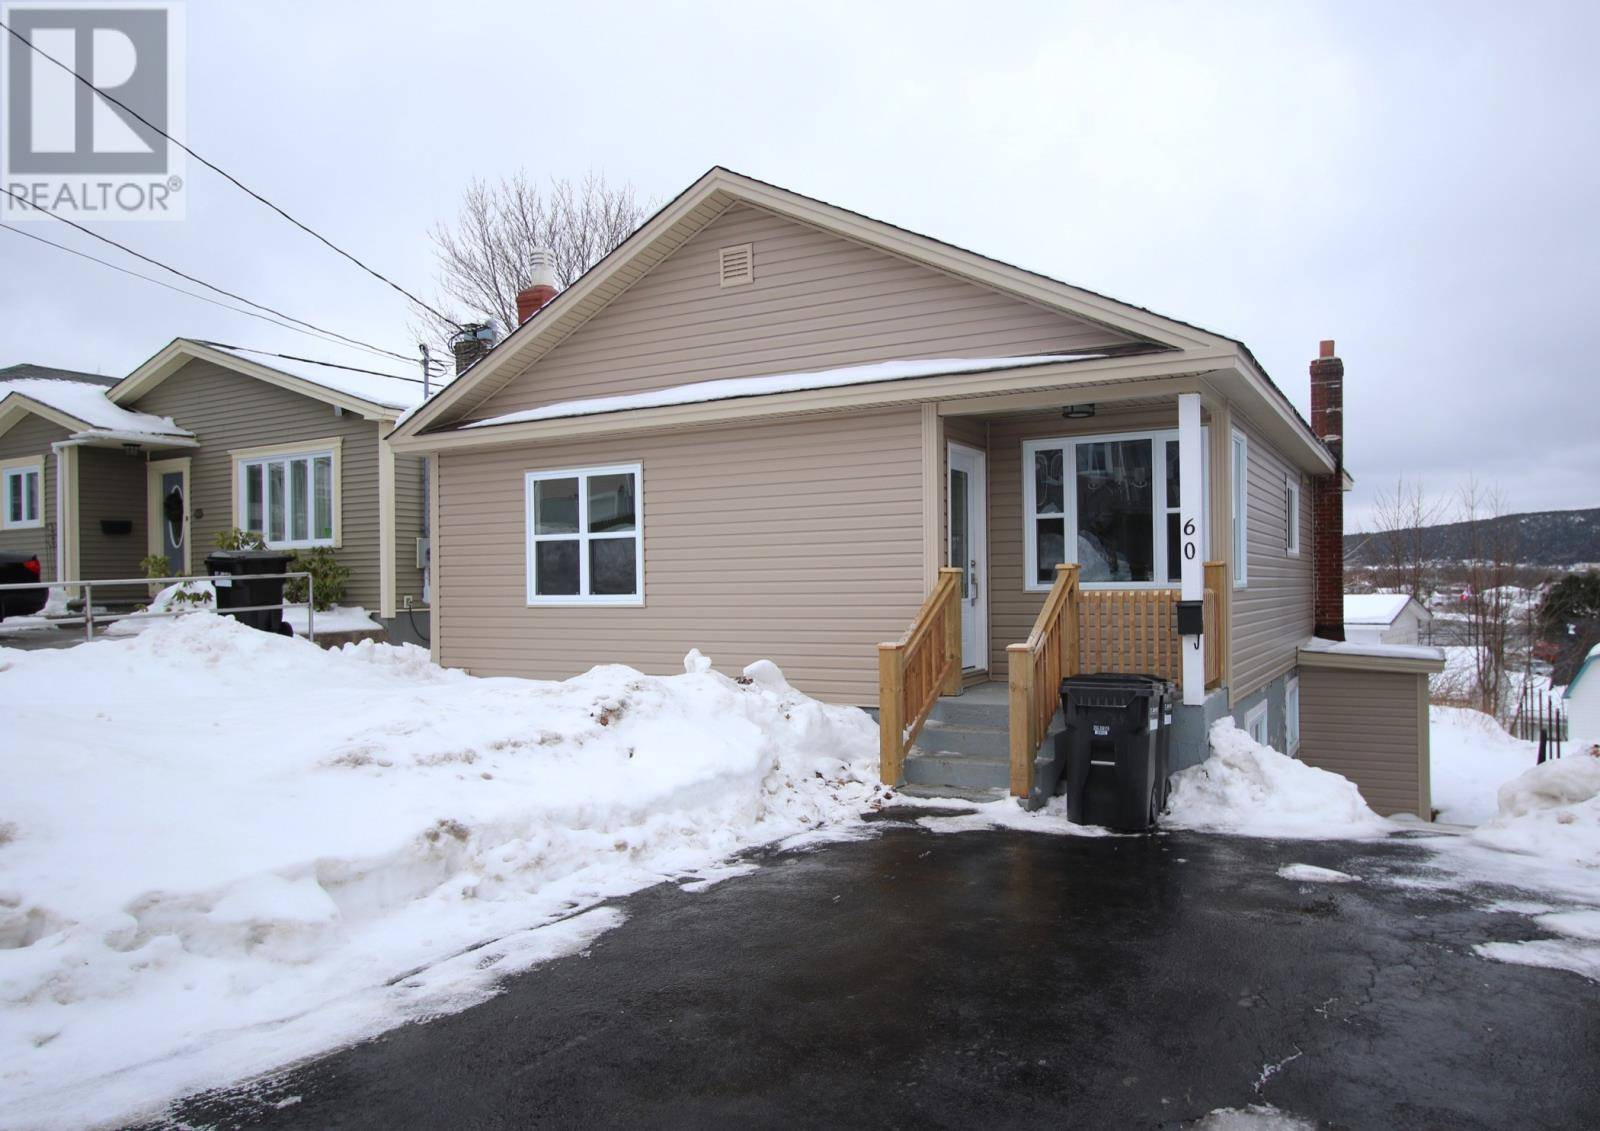 House for sale at 60 Grenfell Ave St. John's Newfoundland - MLS: 1209208